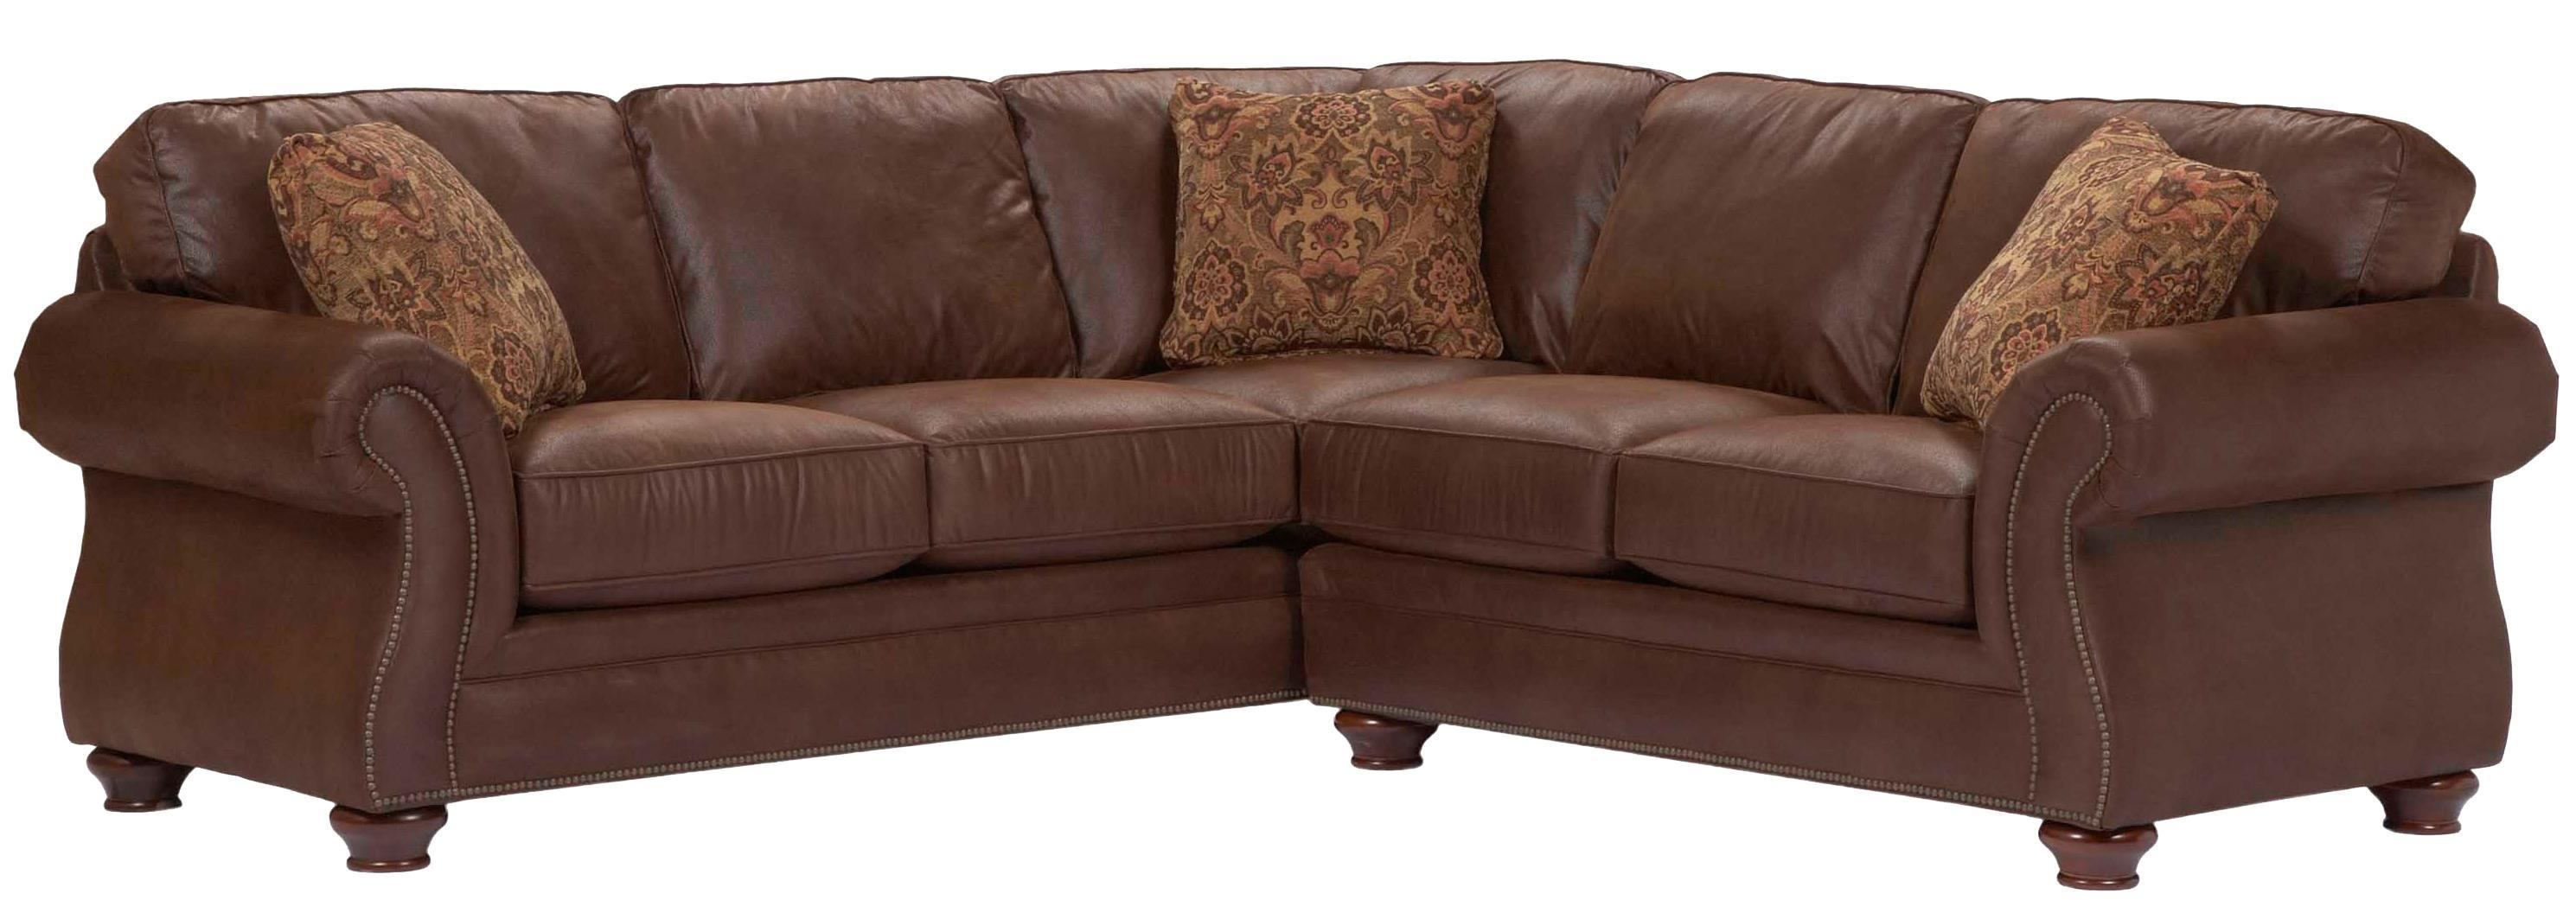 Broyhill Furniture Laramie Sectional Sofa - Item Number: 5080-4+1